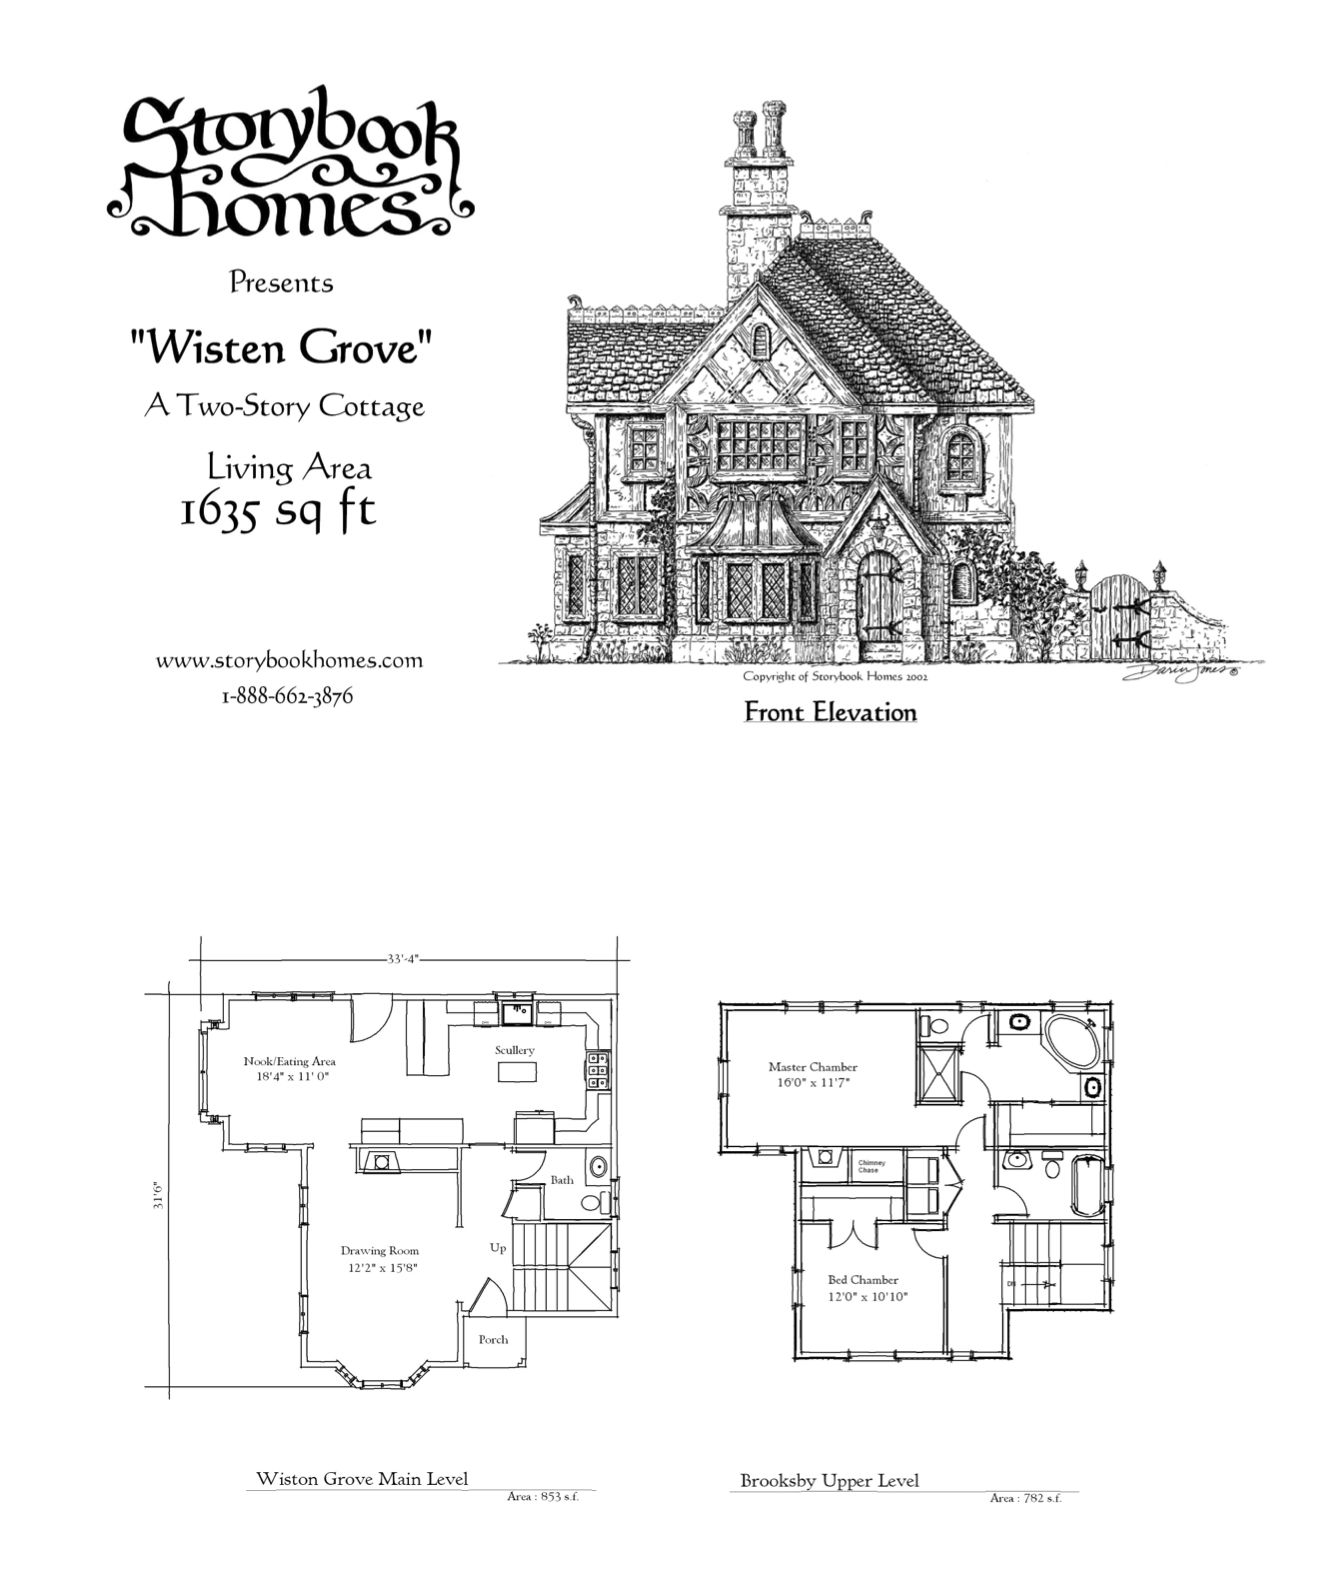 Add Carriage House To Stage Right Vaulted Ceilings Over Entryway Eating Nook Living White Stucco Ext W Storybook House Plan Storybook Homes House Floor Plans